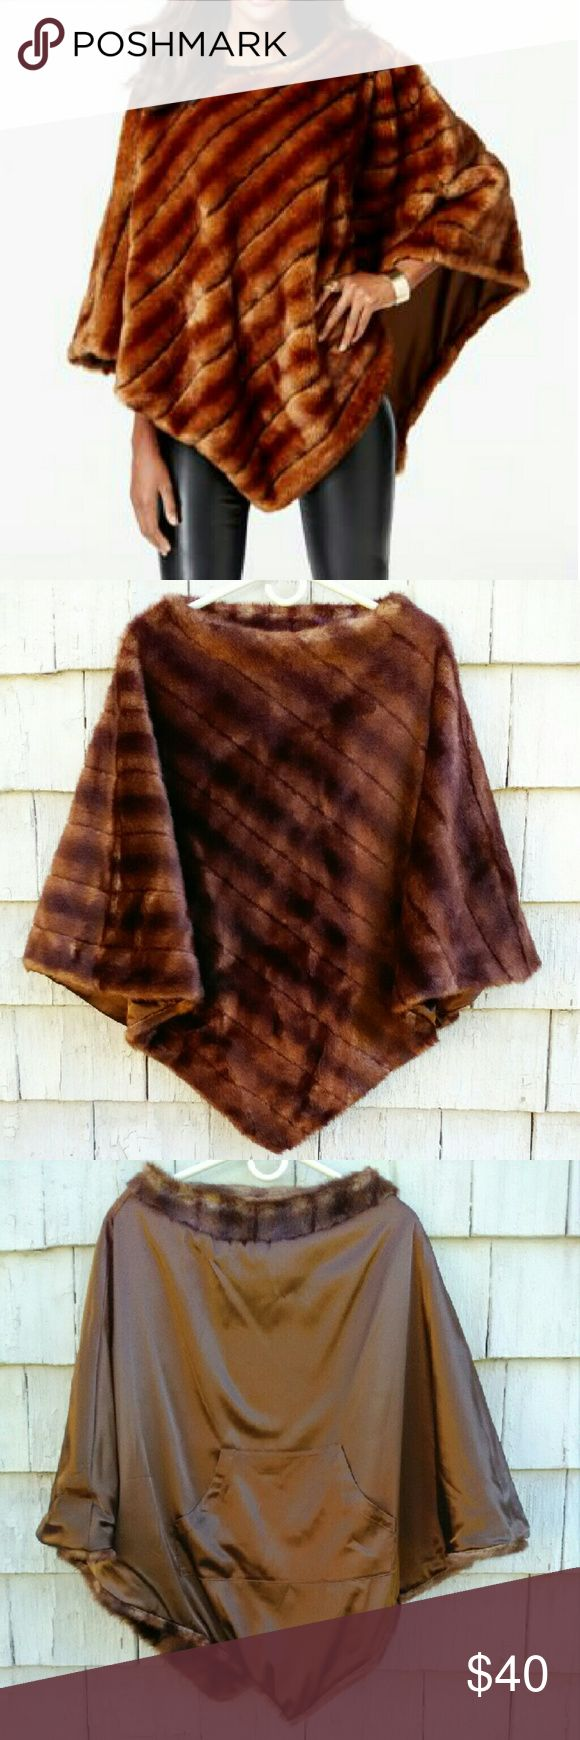 "INC International Concepts Faux Fur Poncho This faux fur poncho is stunning and quality made! Retailed for $159 and has only been tried on (found a vintage one I ended up using), so superb condition! Pic.  3 shows internal hand warming center pocket. Size small and seems true to size. Super soft,  quality faux fur! Approx. 30"" long at longest. INC International Concepts Jackets & Coats Capes"